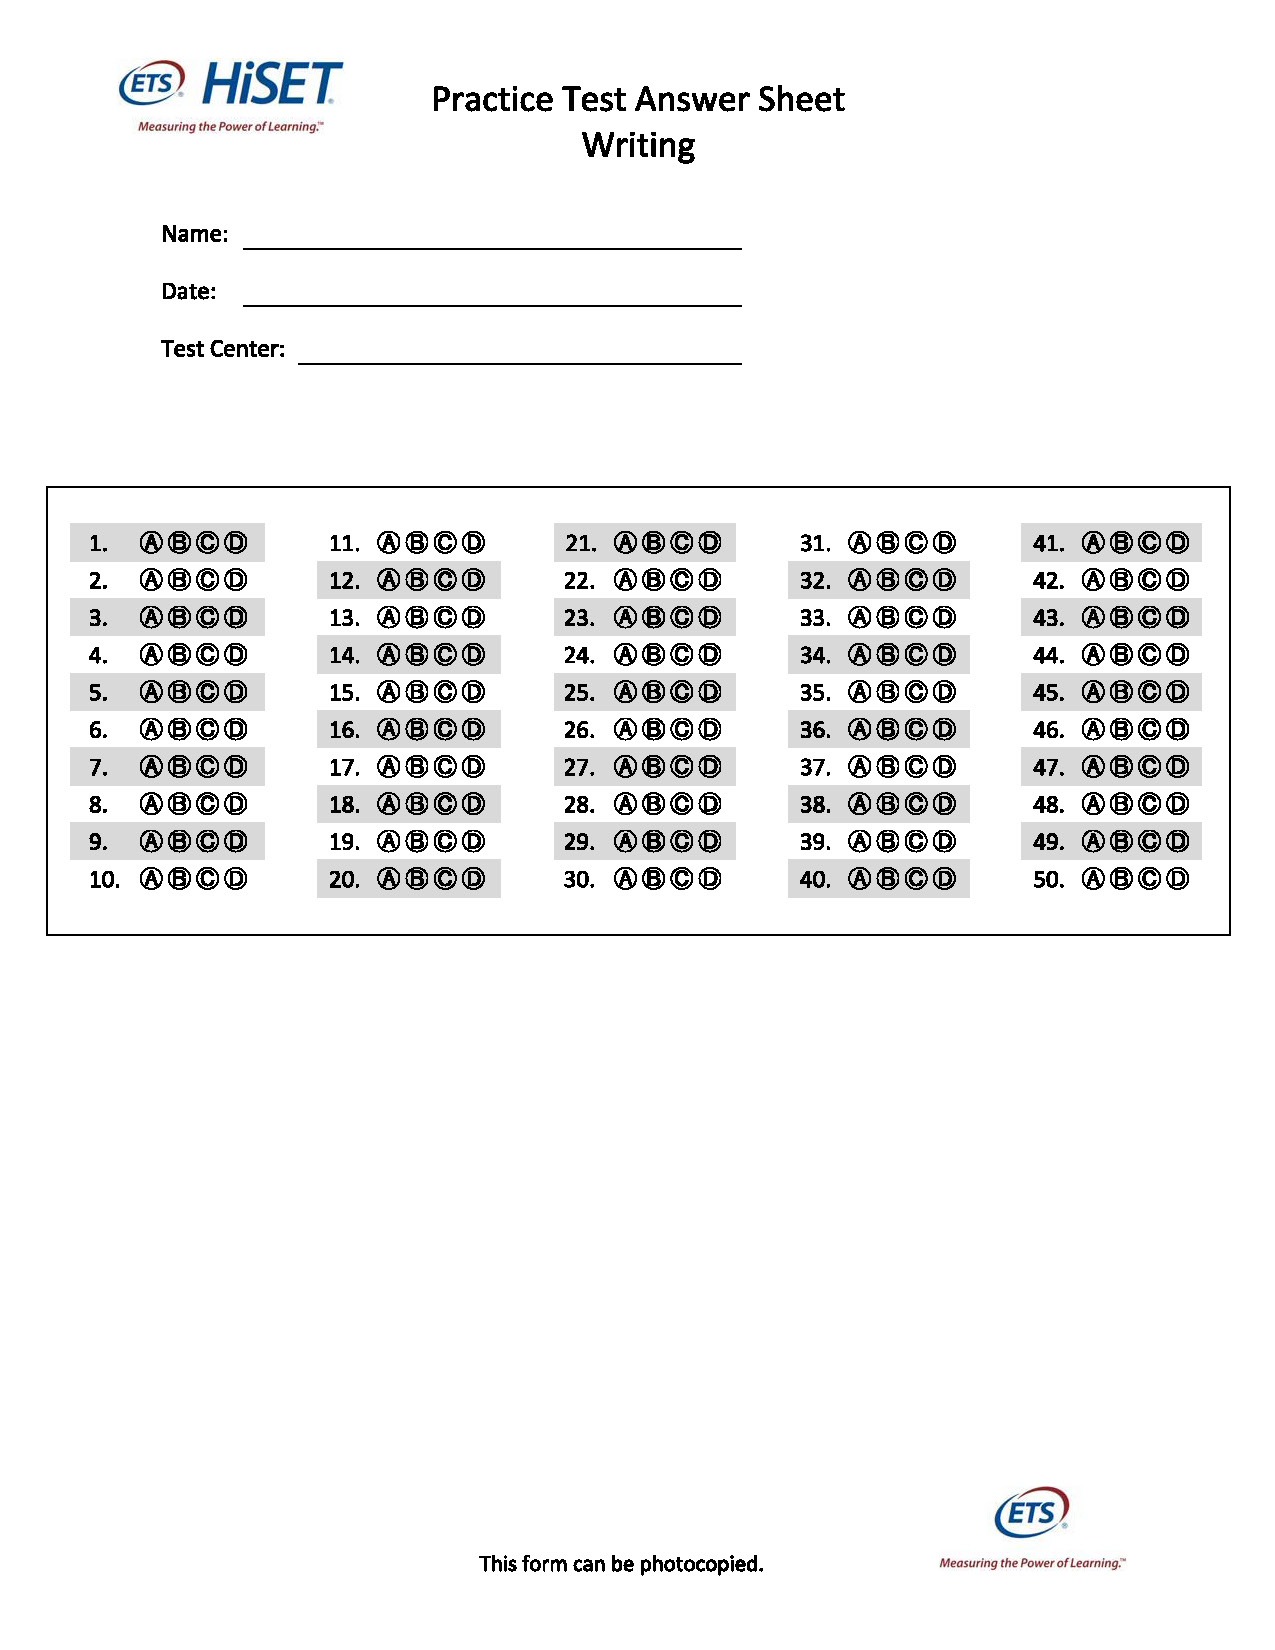 Hiset Practice Test Math Worksheets Hiset Best Free